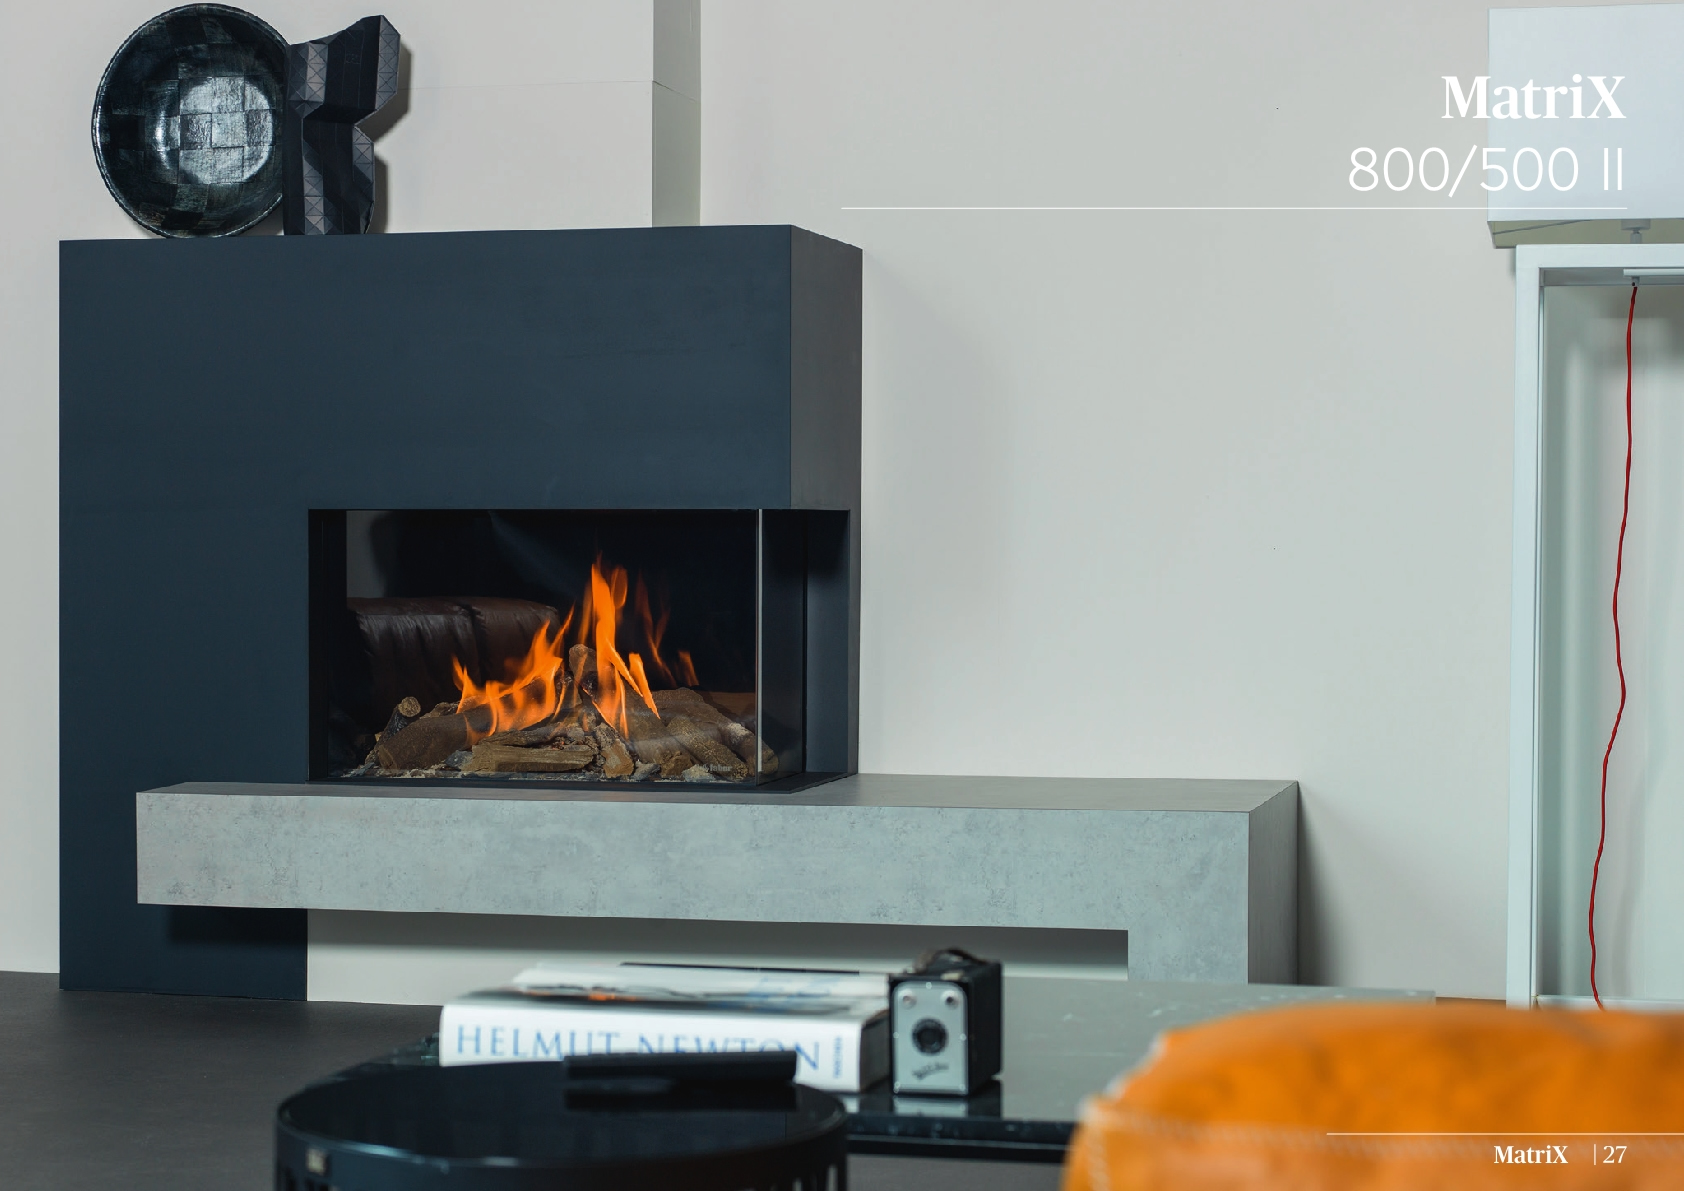 Faber Natural Gas Fireplaces - Matrix 800 / 500 II